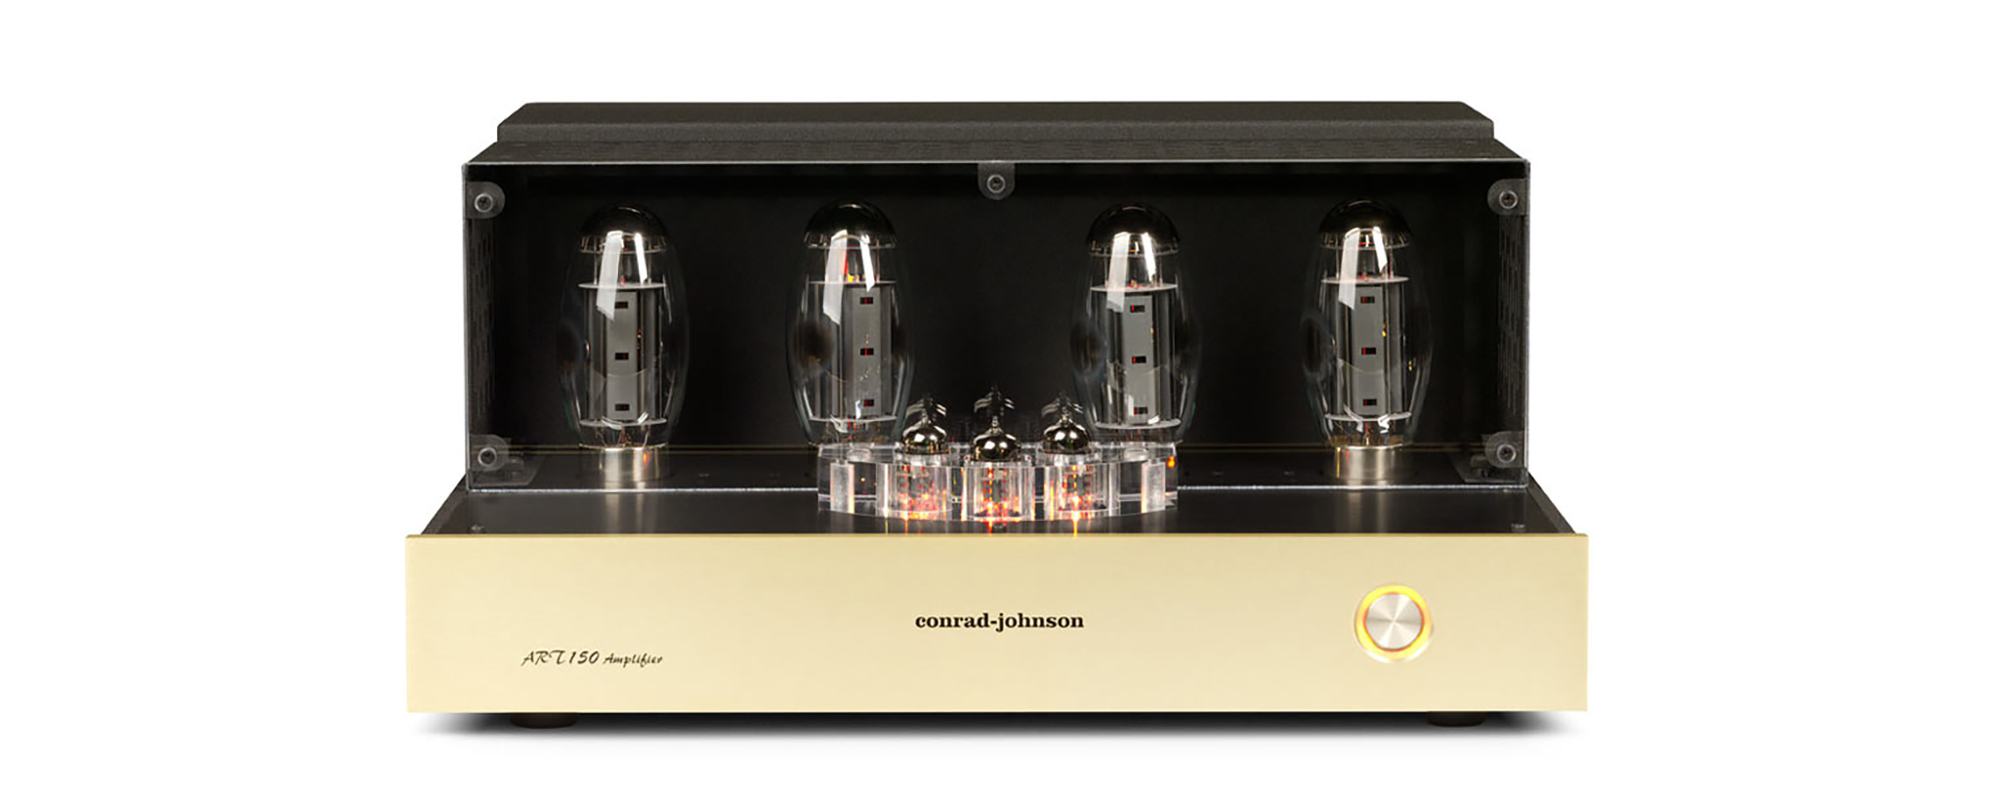 Conrad Johnson Banner 3 - Norman Audio